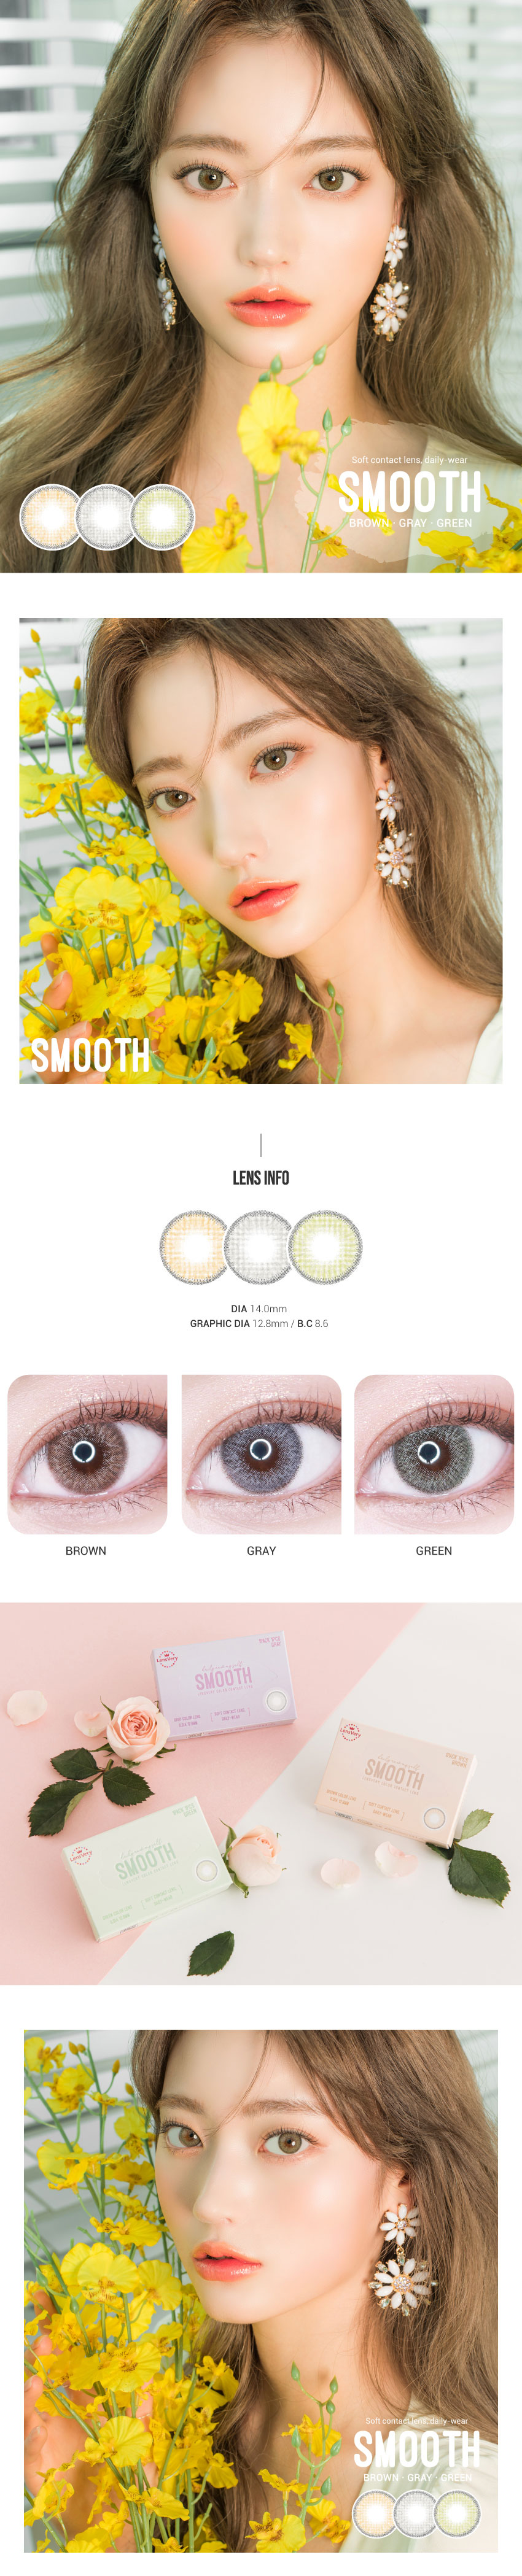 smooth-main-korean-circle-lenses-new1.jpg